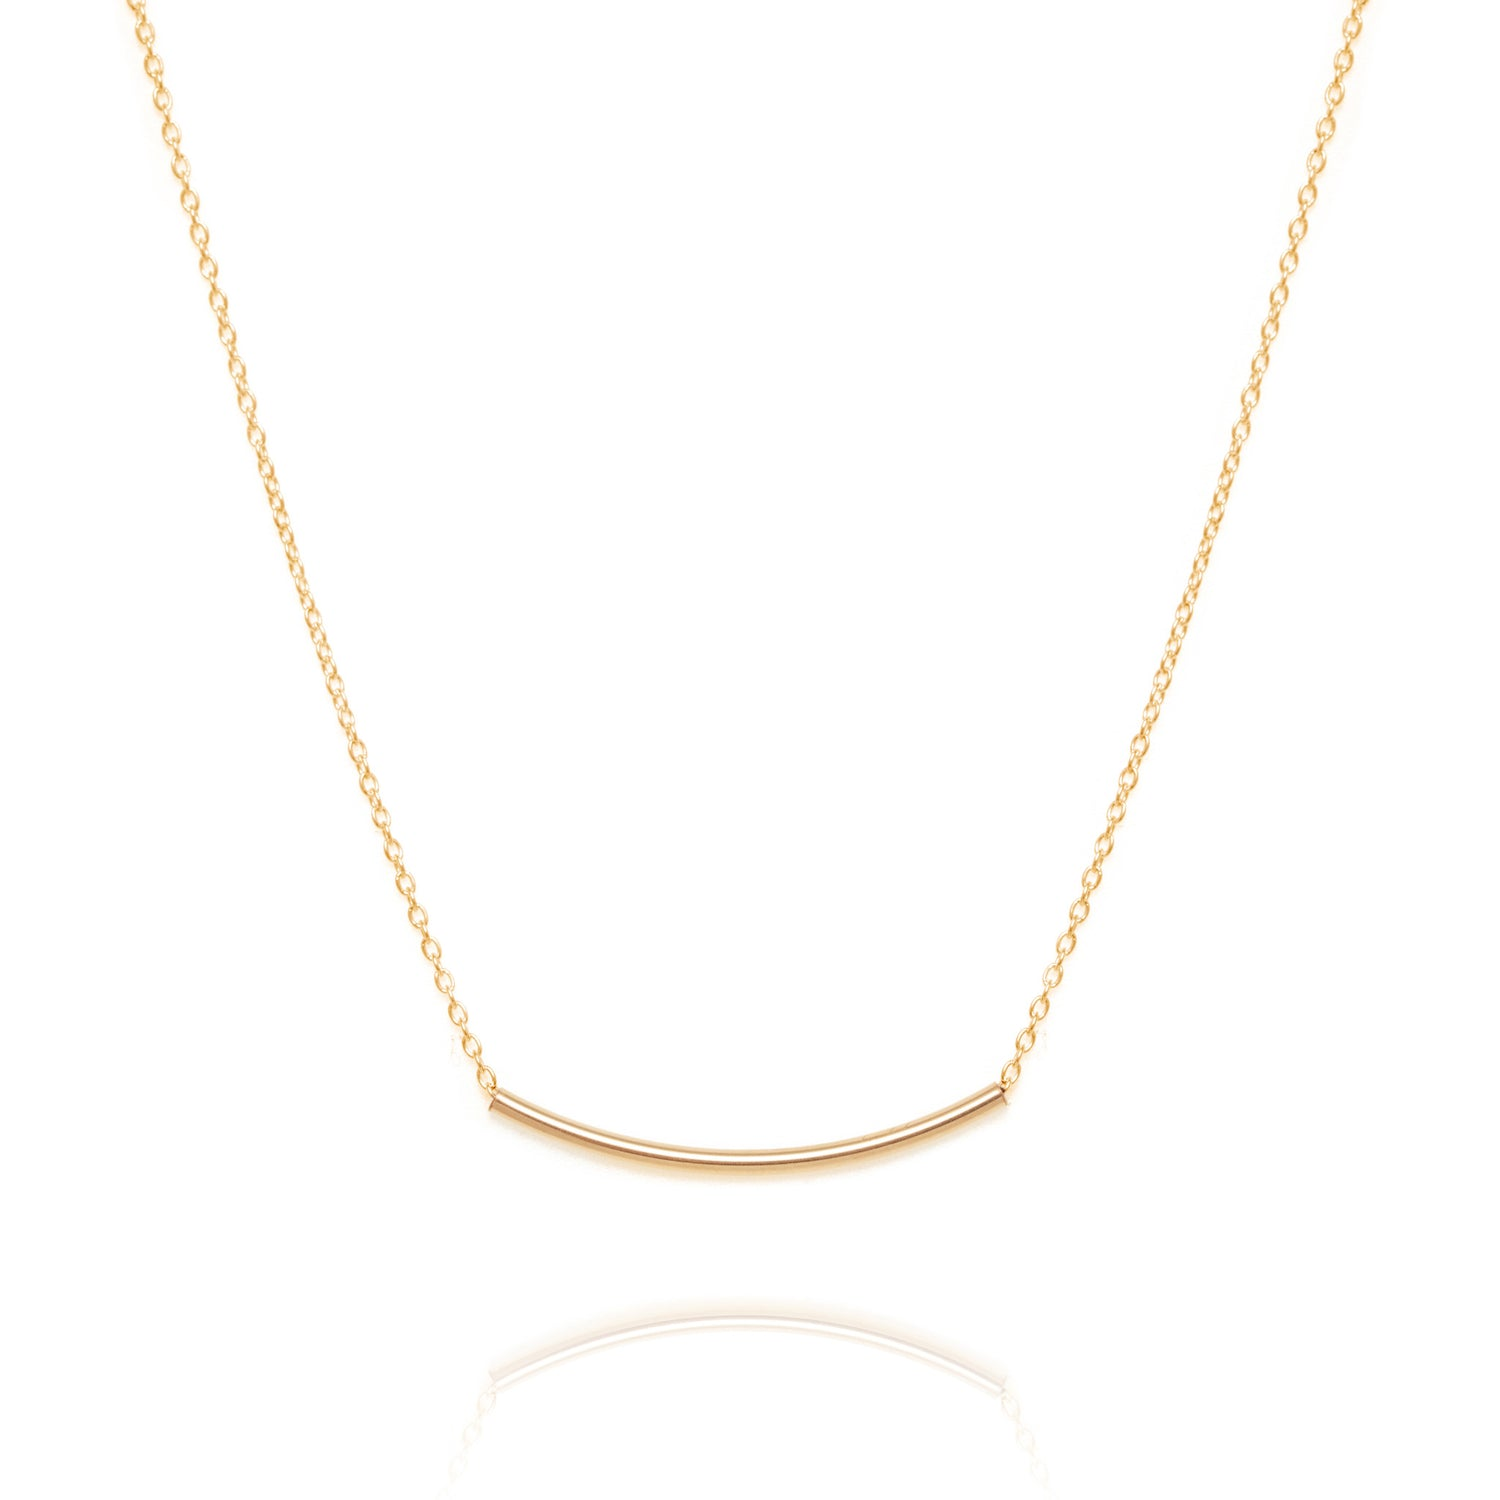 Curved bar necklace, gold